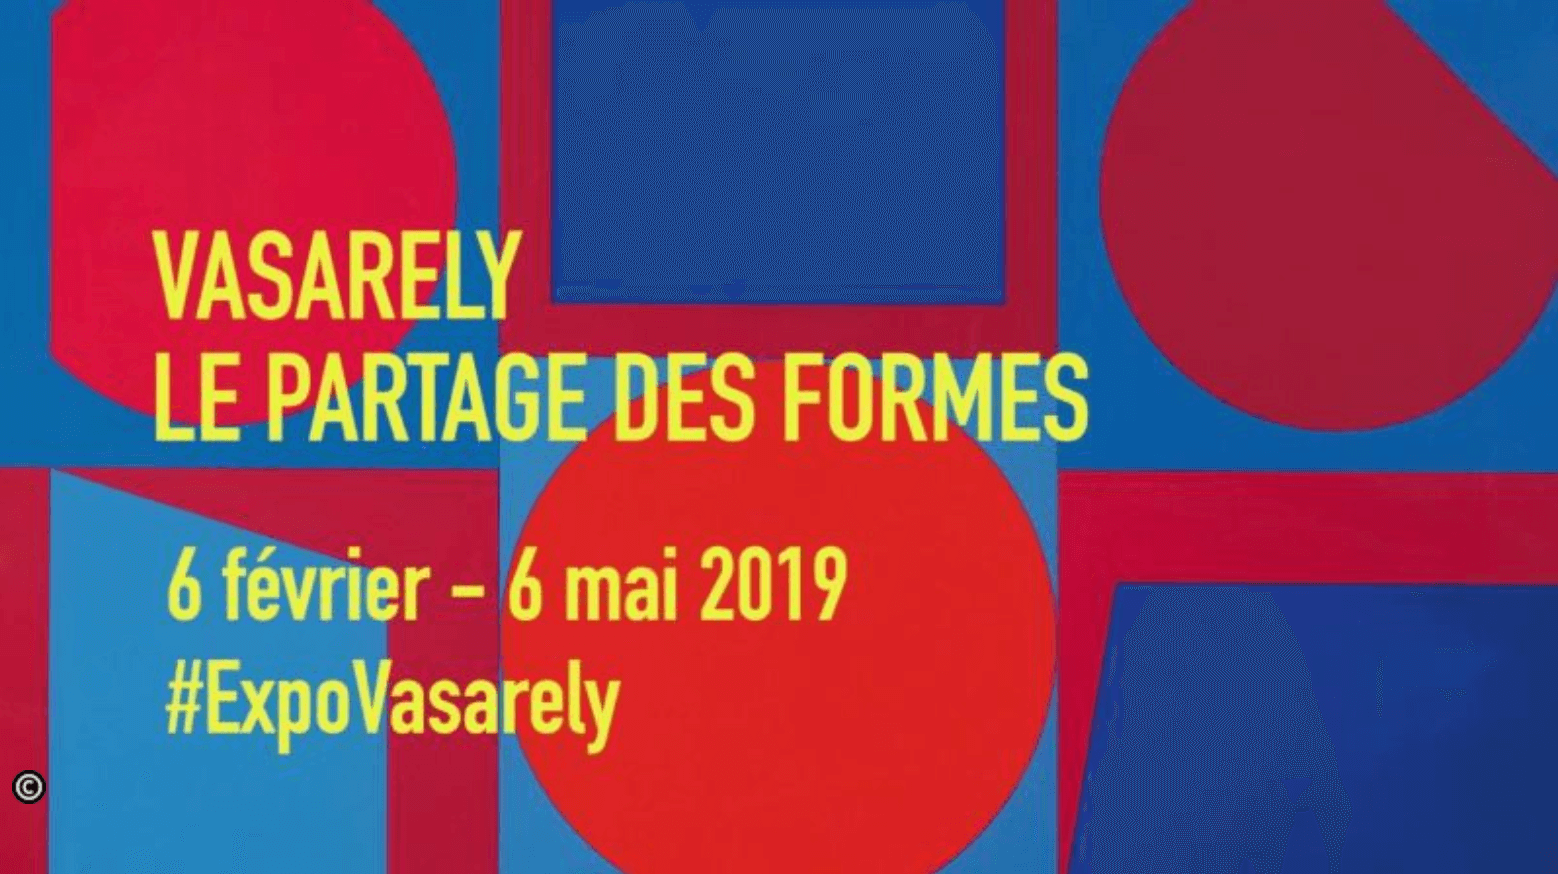 Vasarely – Sharing forms